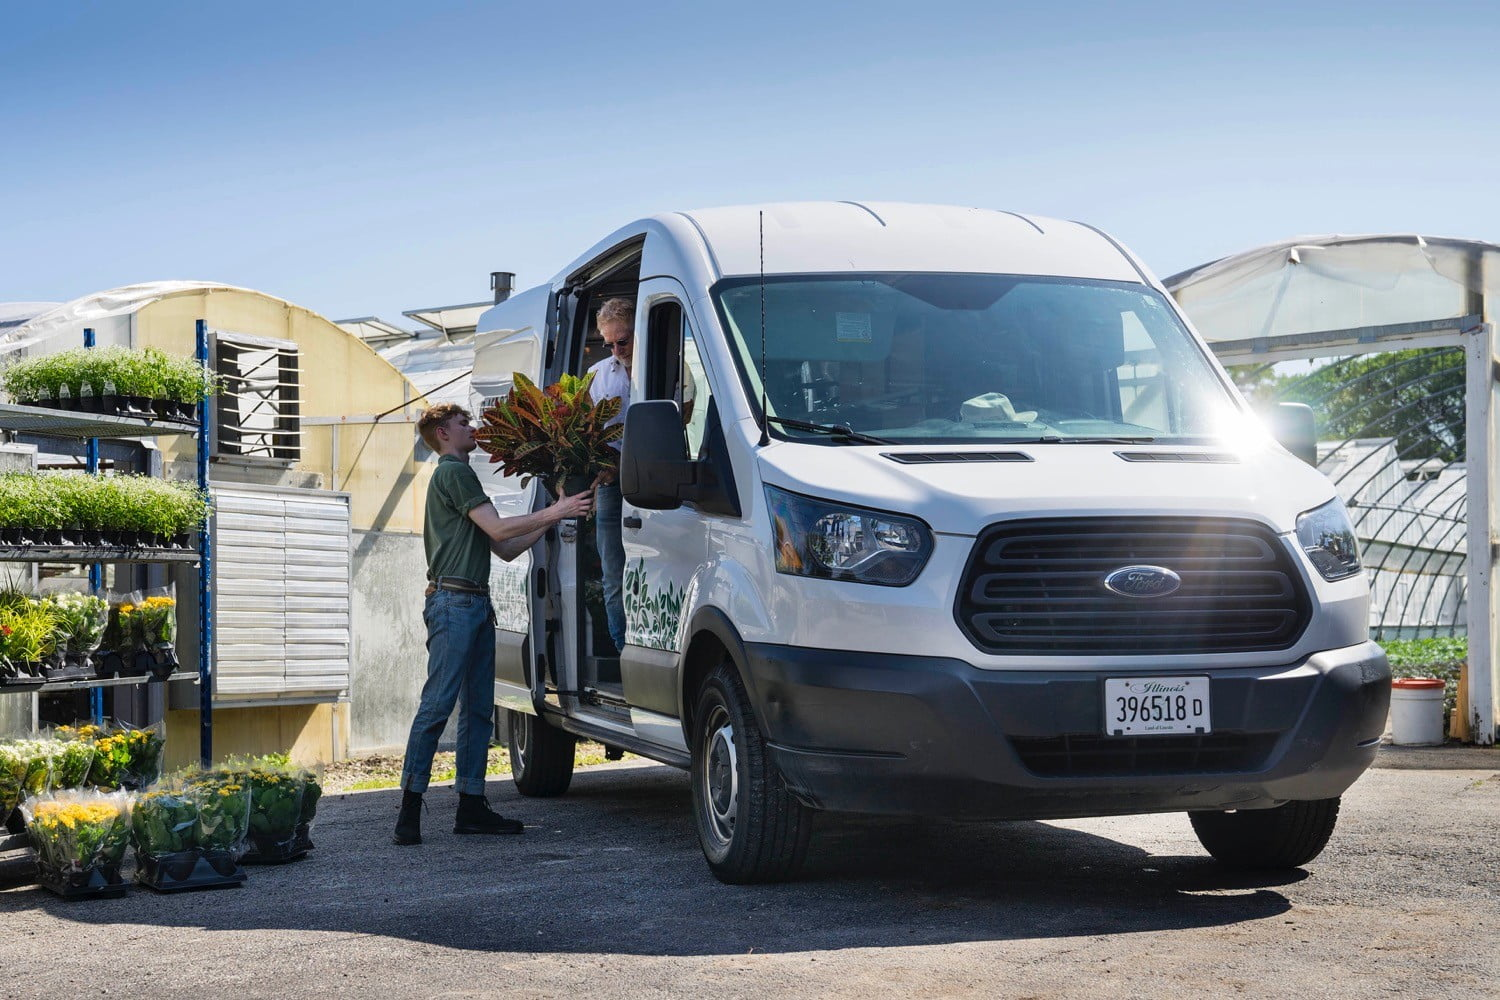 Entrepreneurs are buying vans instead of signing leases, says Ford